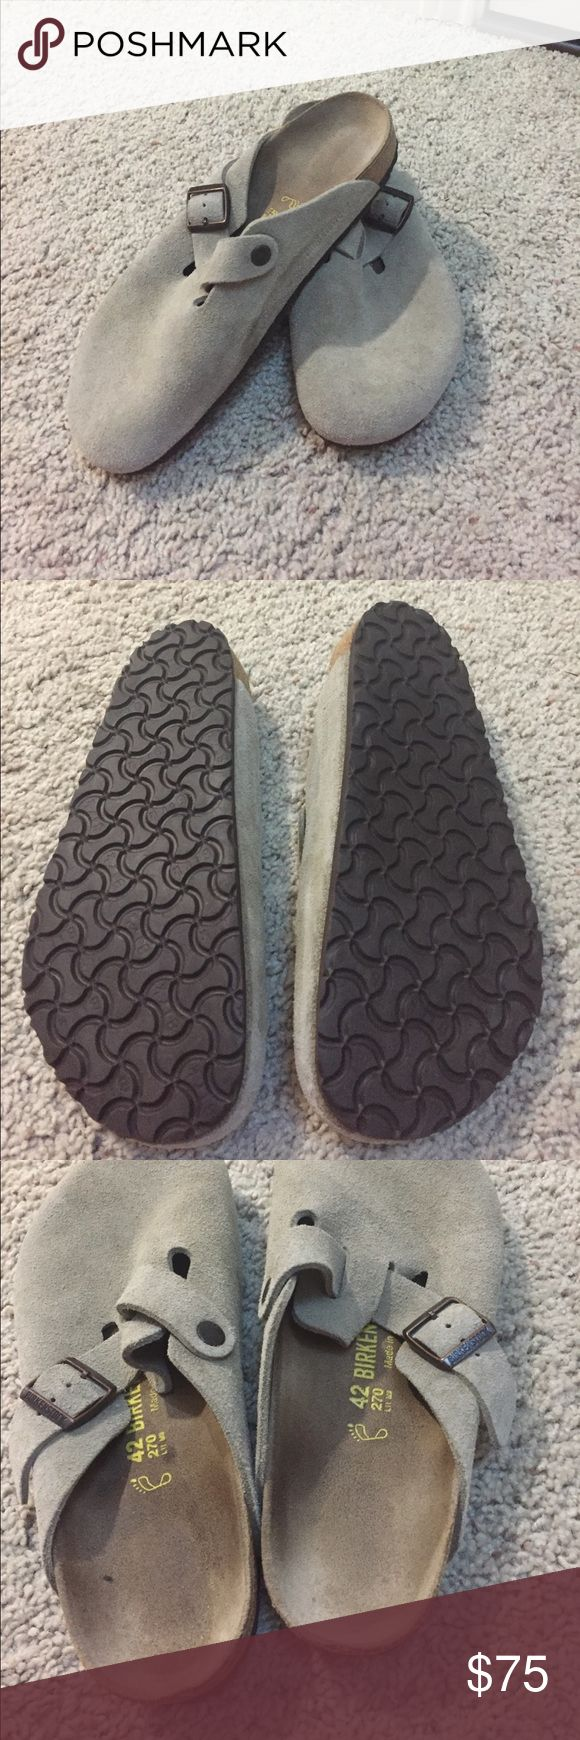 New without box Birkenstock tan slip ons Size 42. Never used. Great support for feet and in winter with cozy socks :) offers are welcome Birkenstock Shoes Sandals